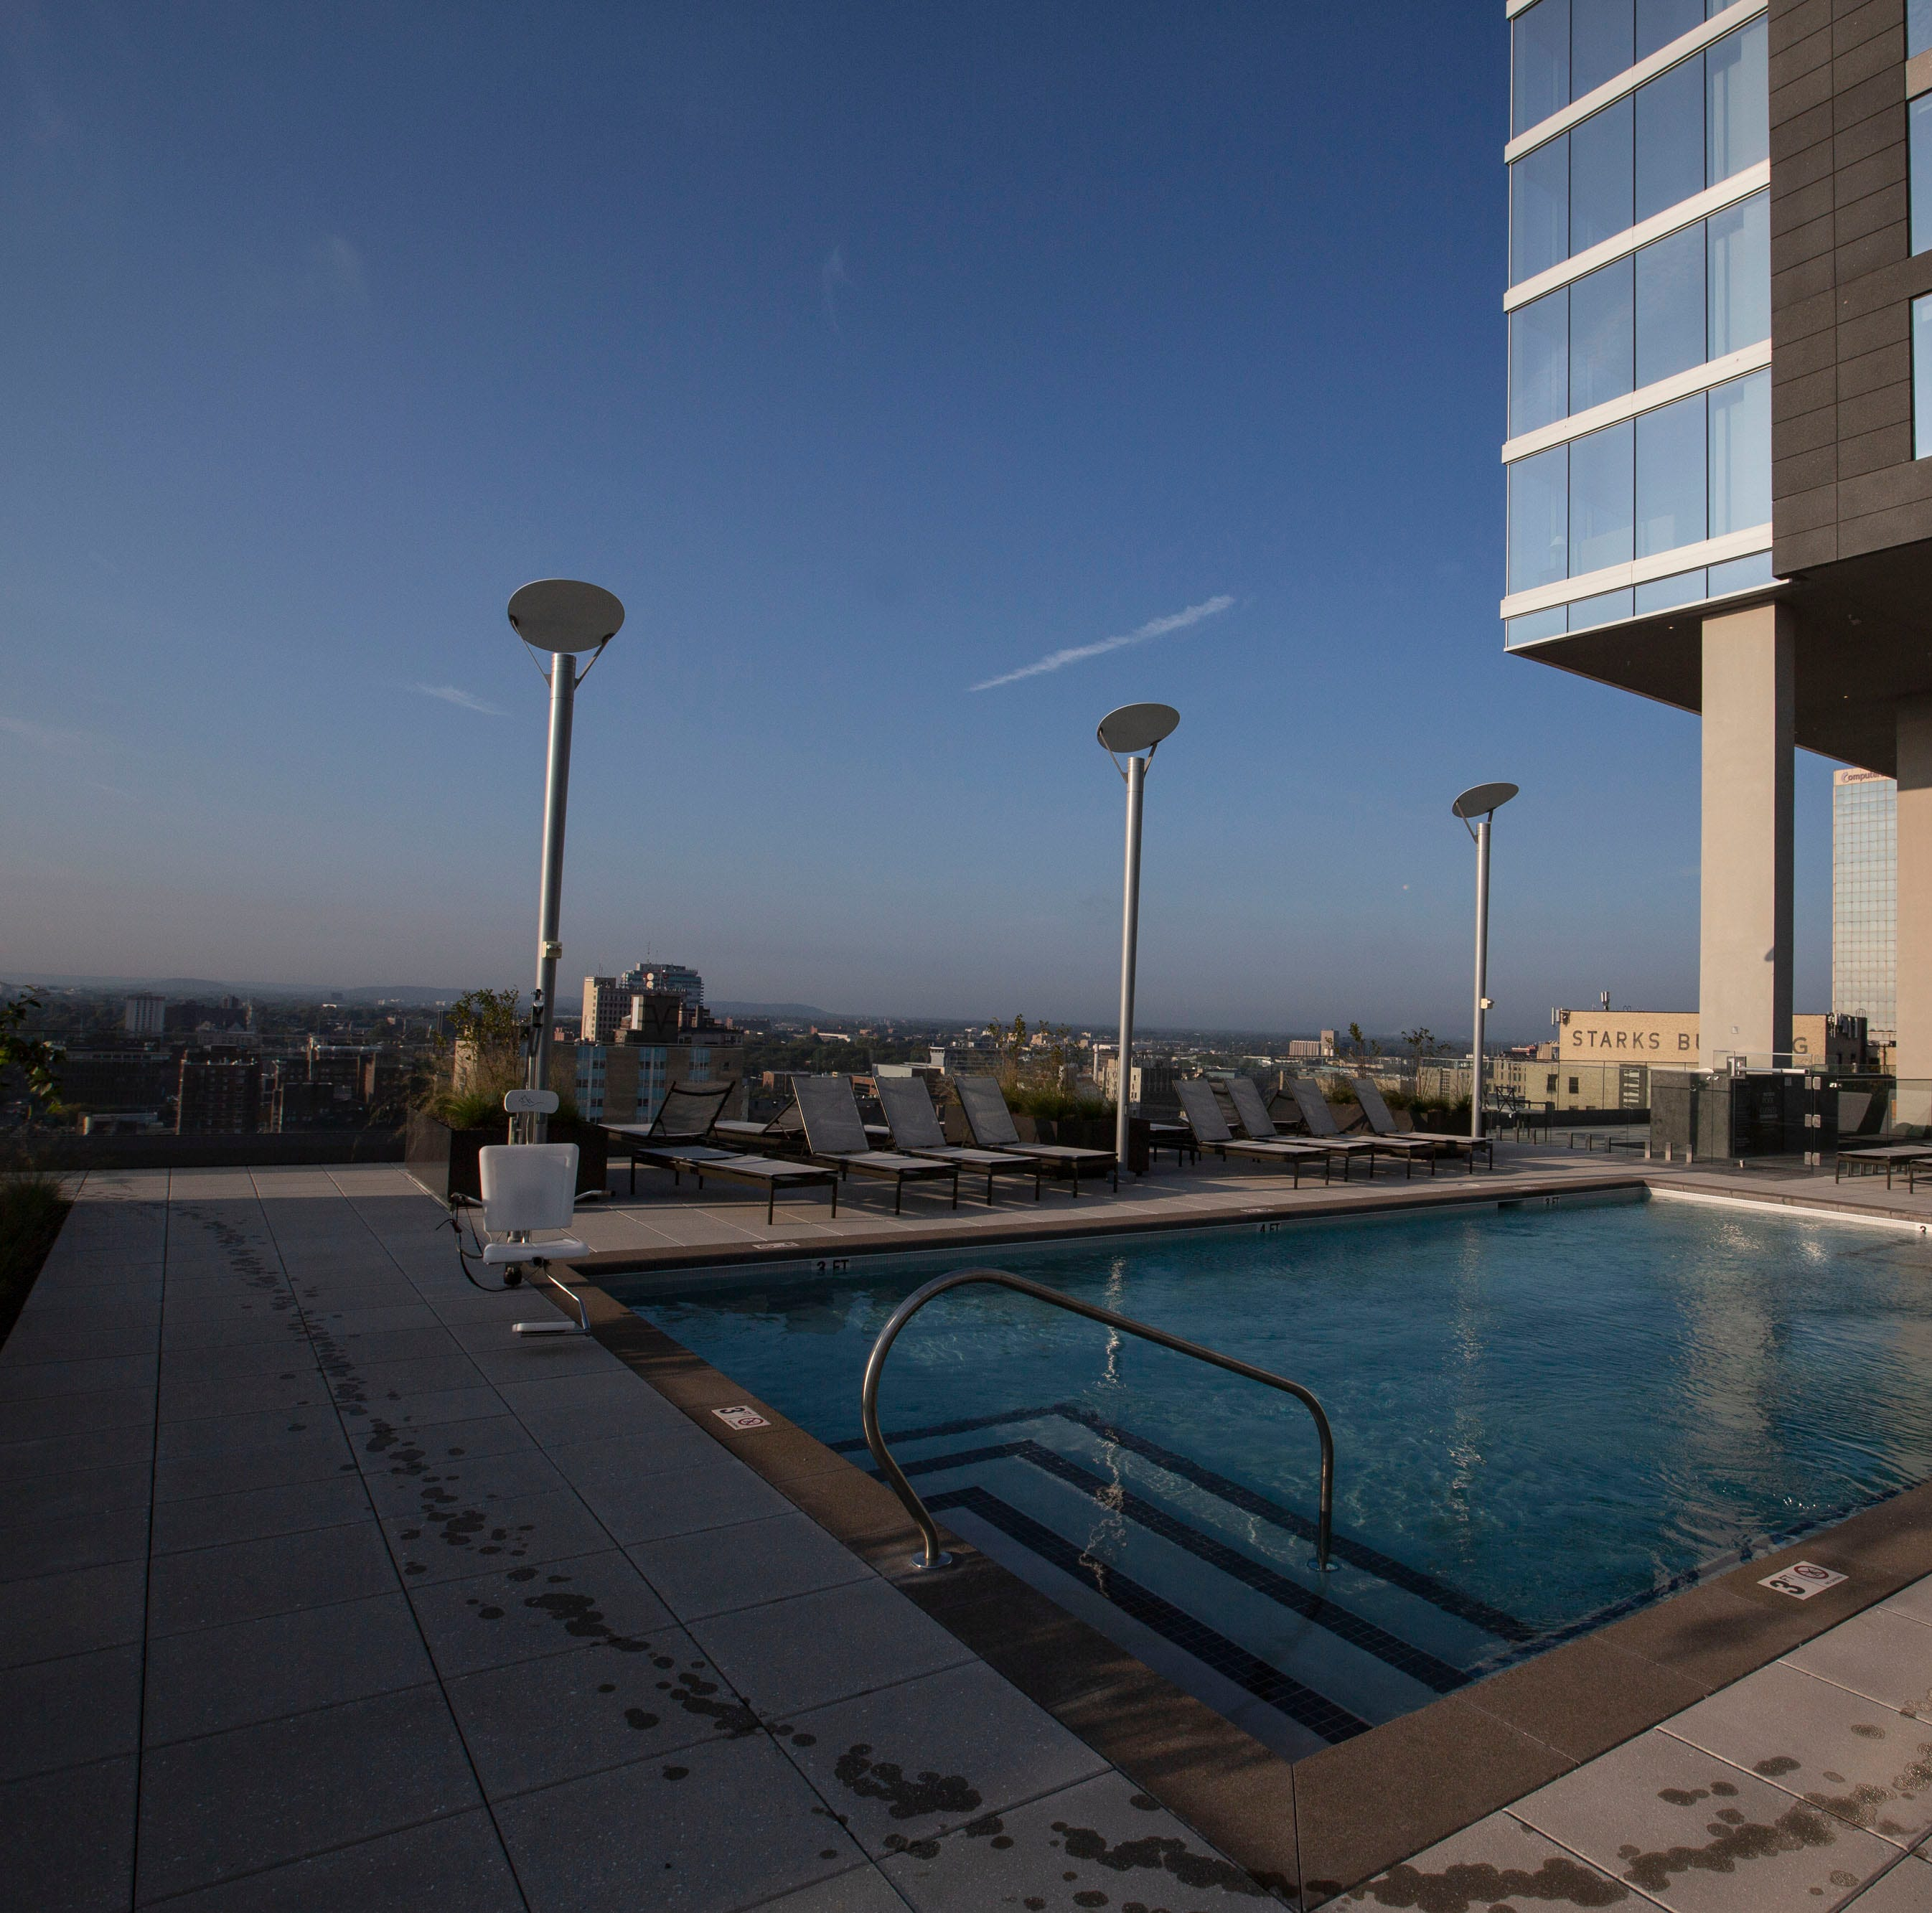 4 things you can do at the Omni Louisville Hotel without being a guest